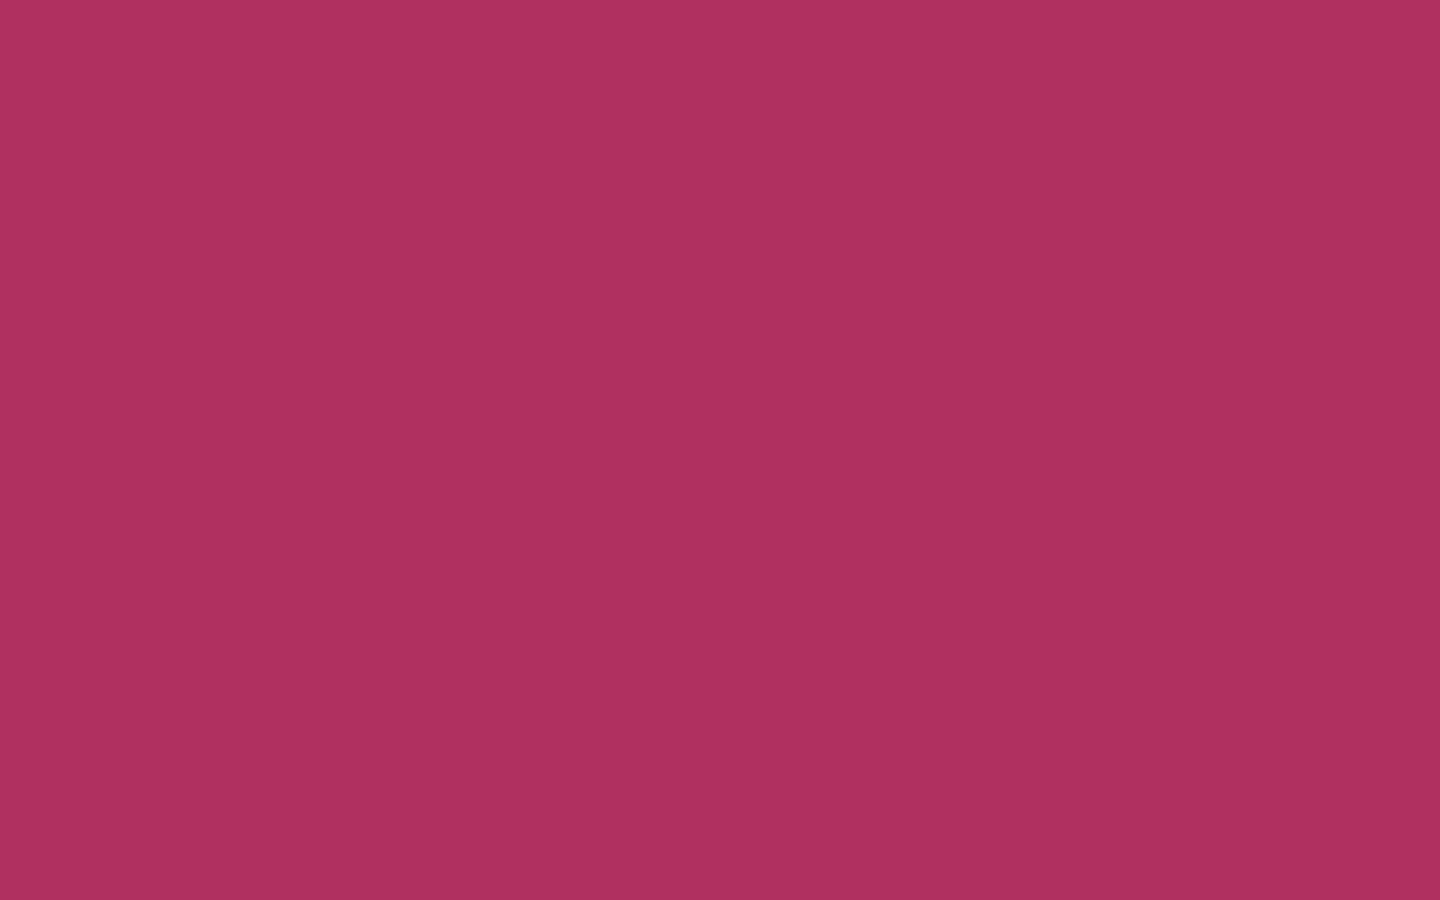 1440x900 Rich Maroon Solid Color Background